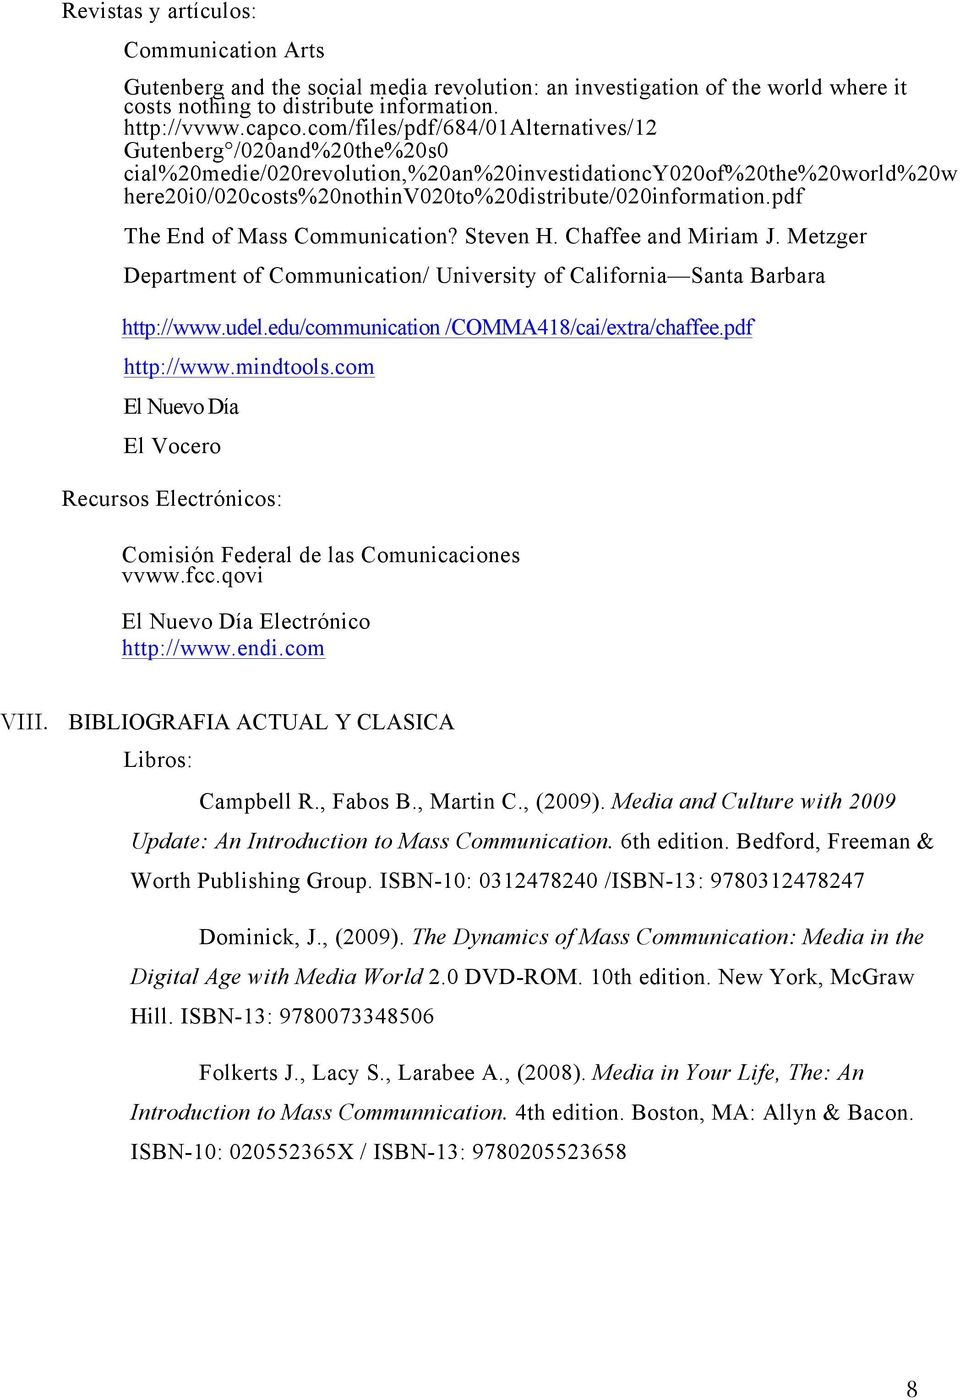 pdf The End of Mass Communication? Steven H. Chaffee and Miriam J. Metzger Department of Communication/ University of California Santa Barbara http://www.udel.